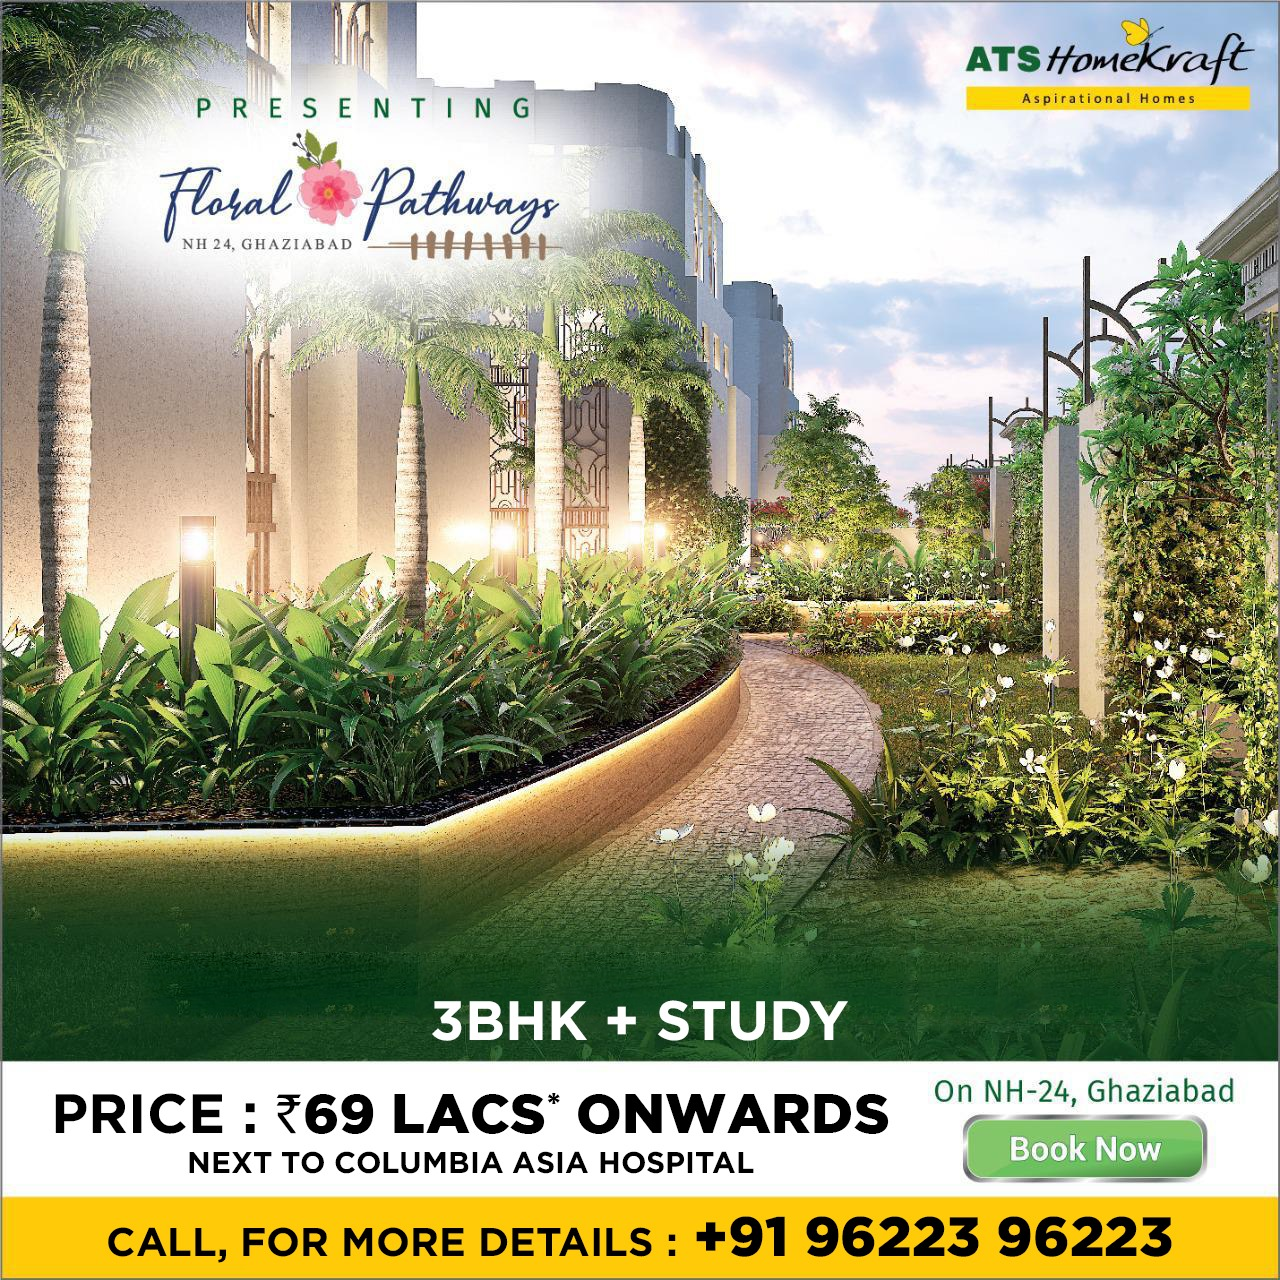 ATS Floral Pathways – Enjoy Your Dream Home At The Best Location